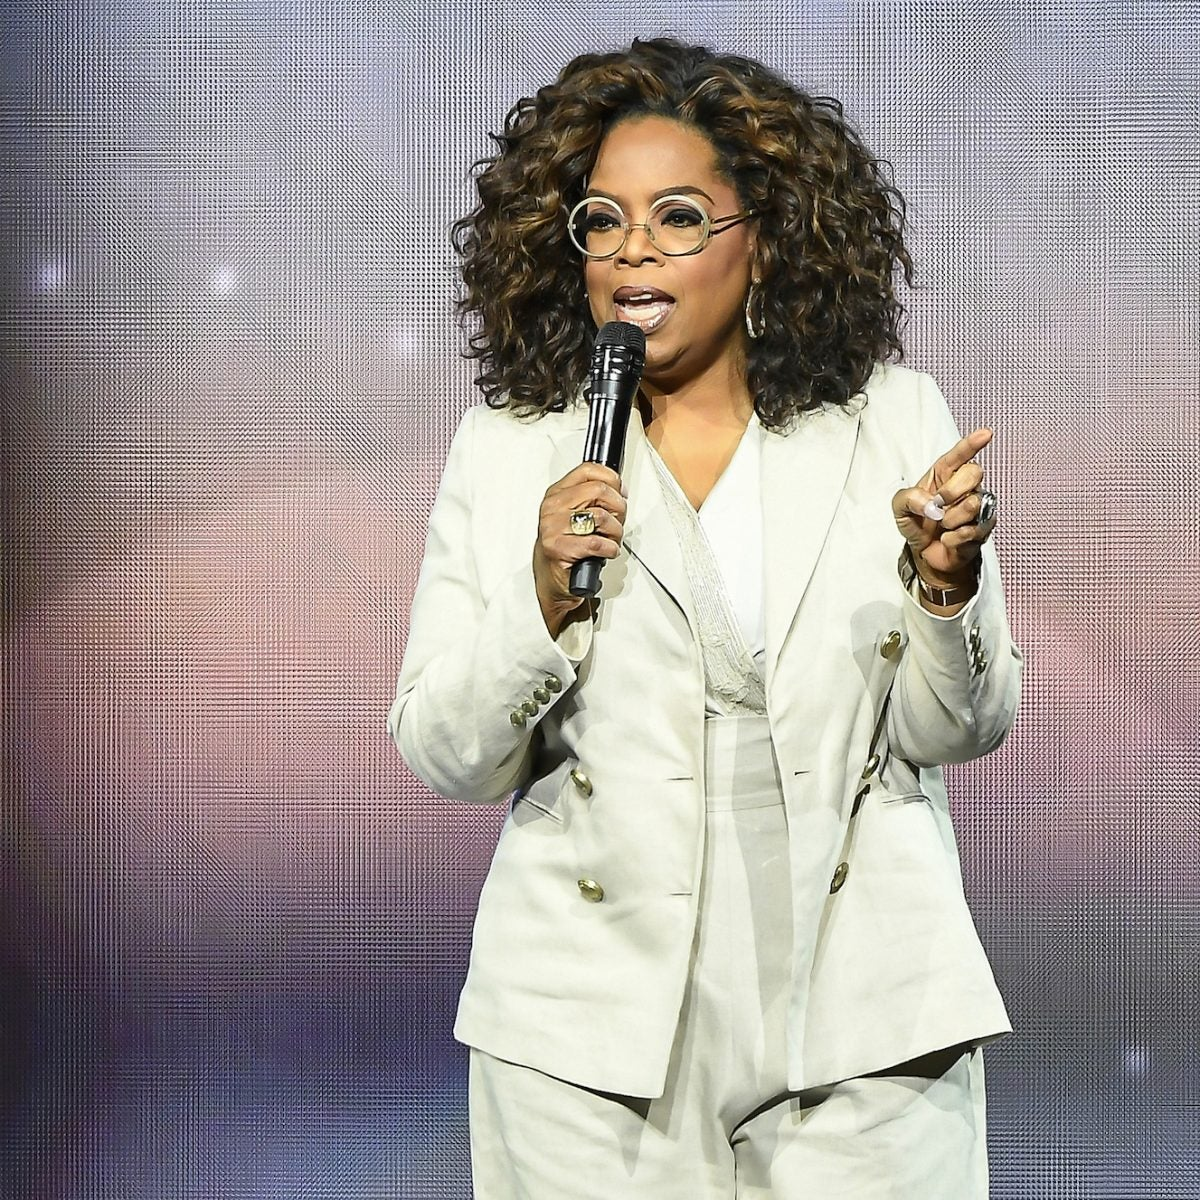 Oprah Winfrey To Deliver Virtual Commencement Address For Class Of 2020